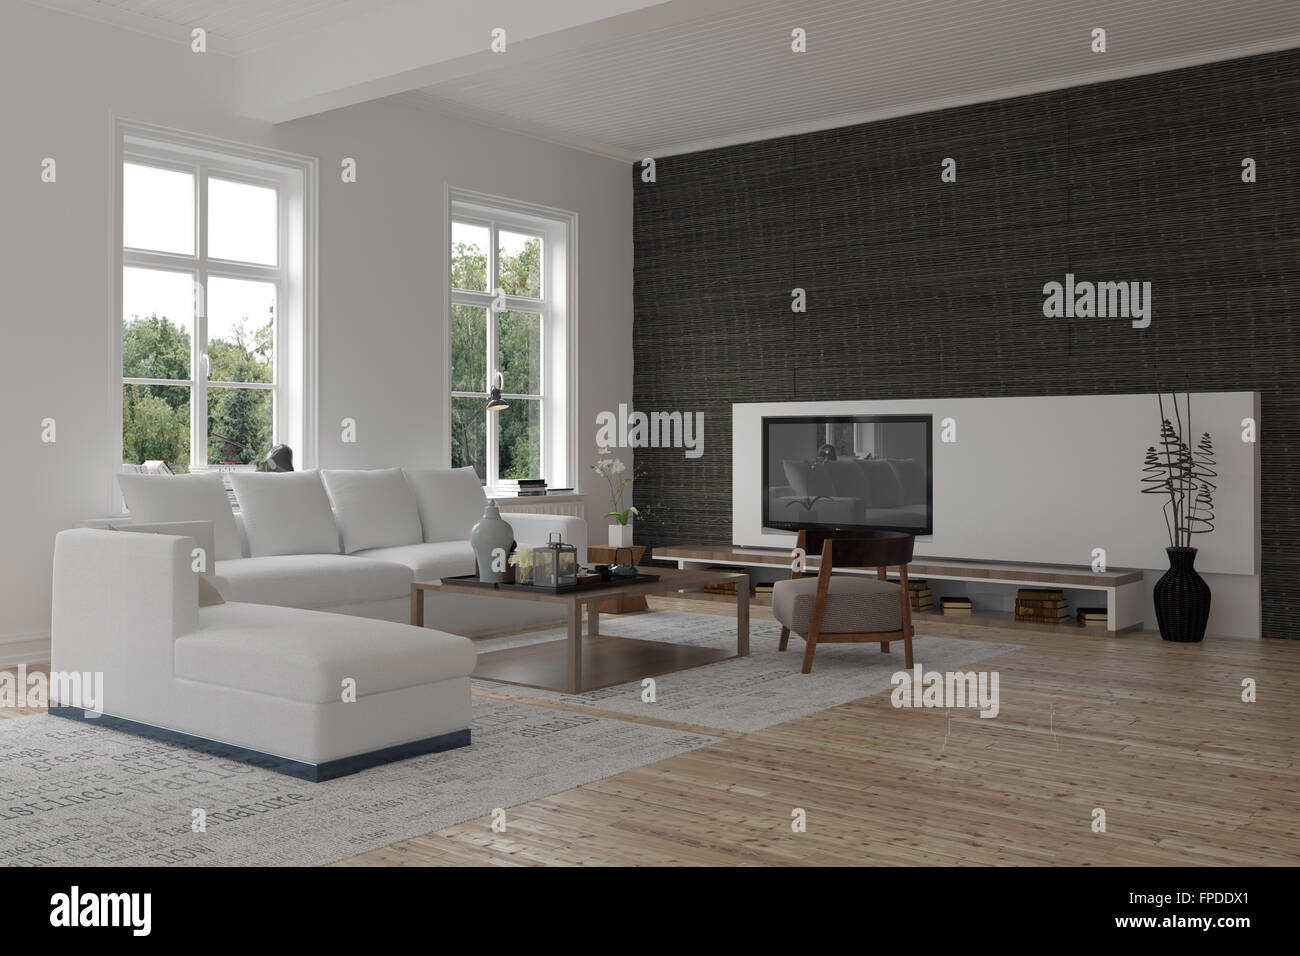 Spacious Modern Living Room Interior With A Black Accent